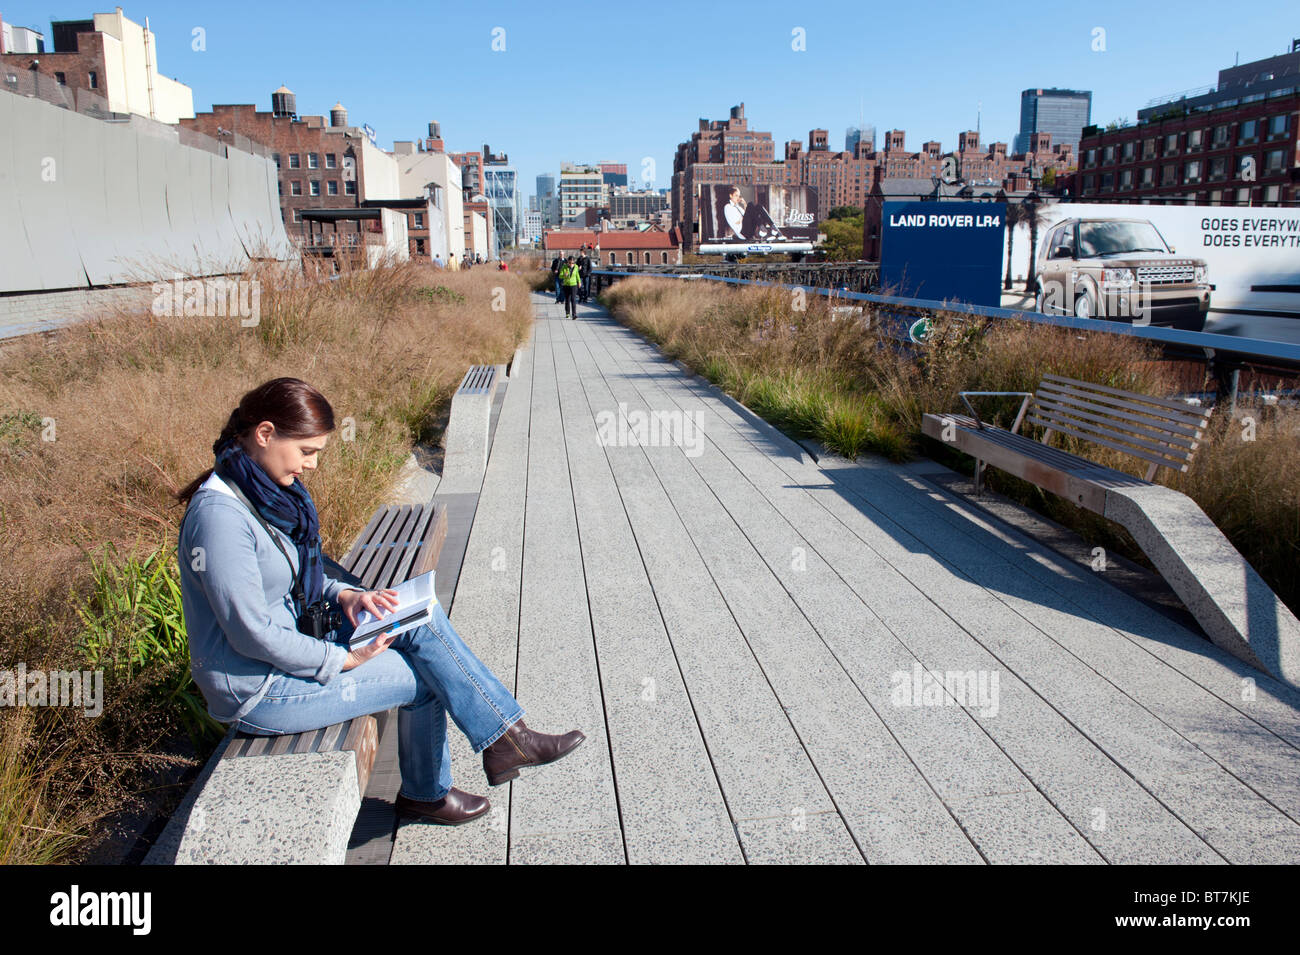 The High Line elevated landscaped public walkway built on old railway viaduct in Chelsea district of Manhattan in Stock Photo